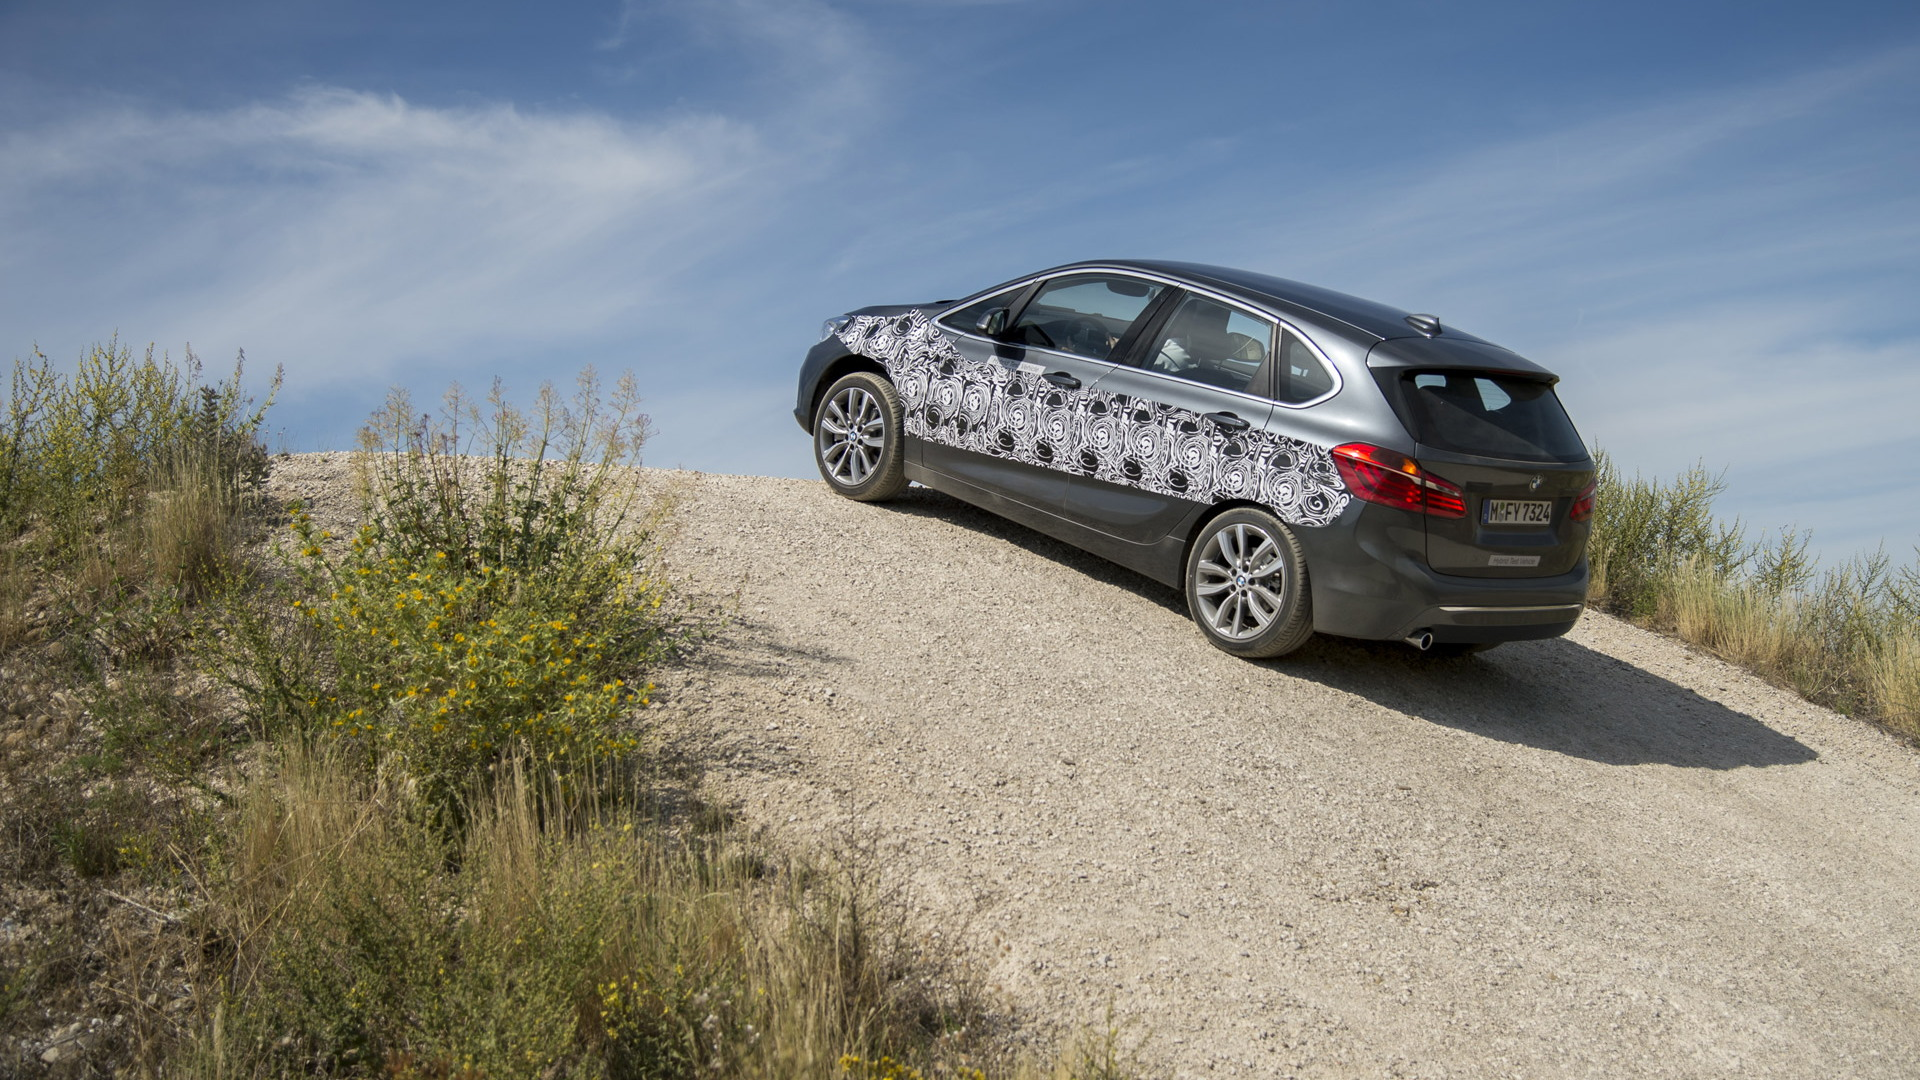 2016 BMW 2-Series Active Tourer plug-in hybrid prototype